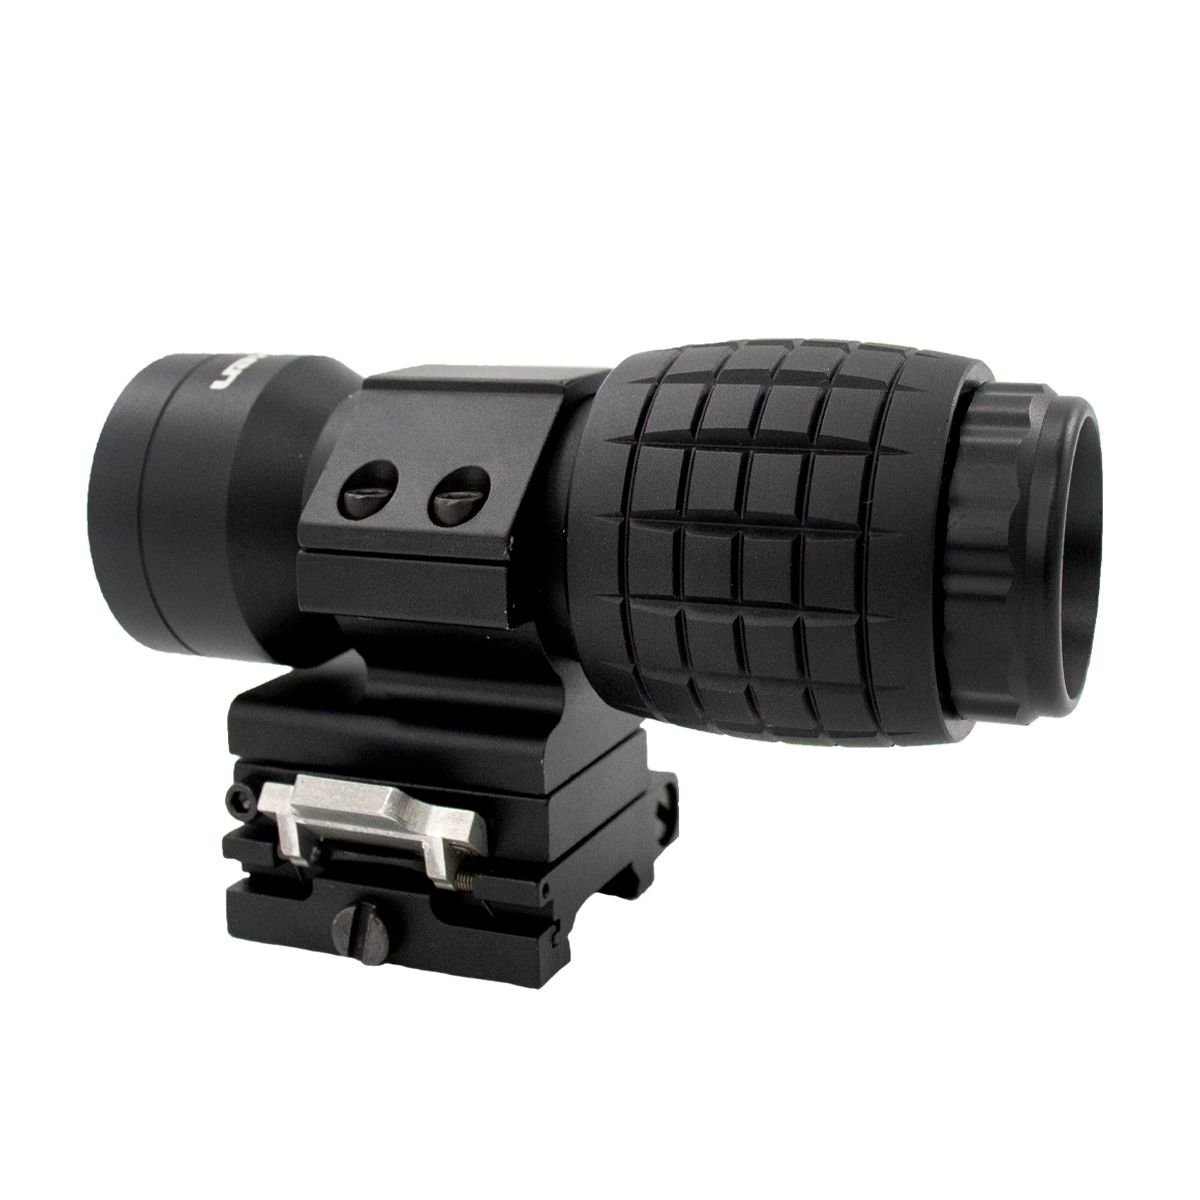 View larger image of Valken 3x Magnifier Scope with Universal Flip-to-Side Mount